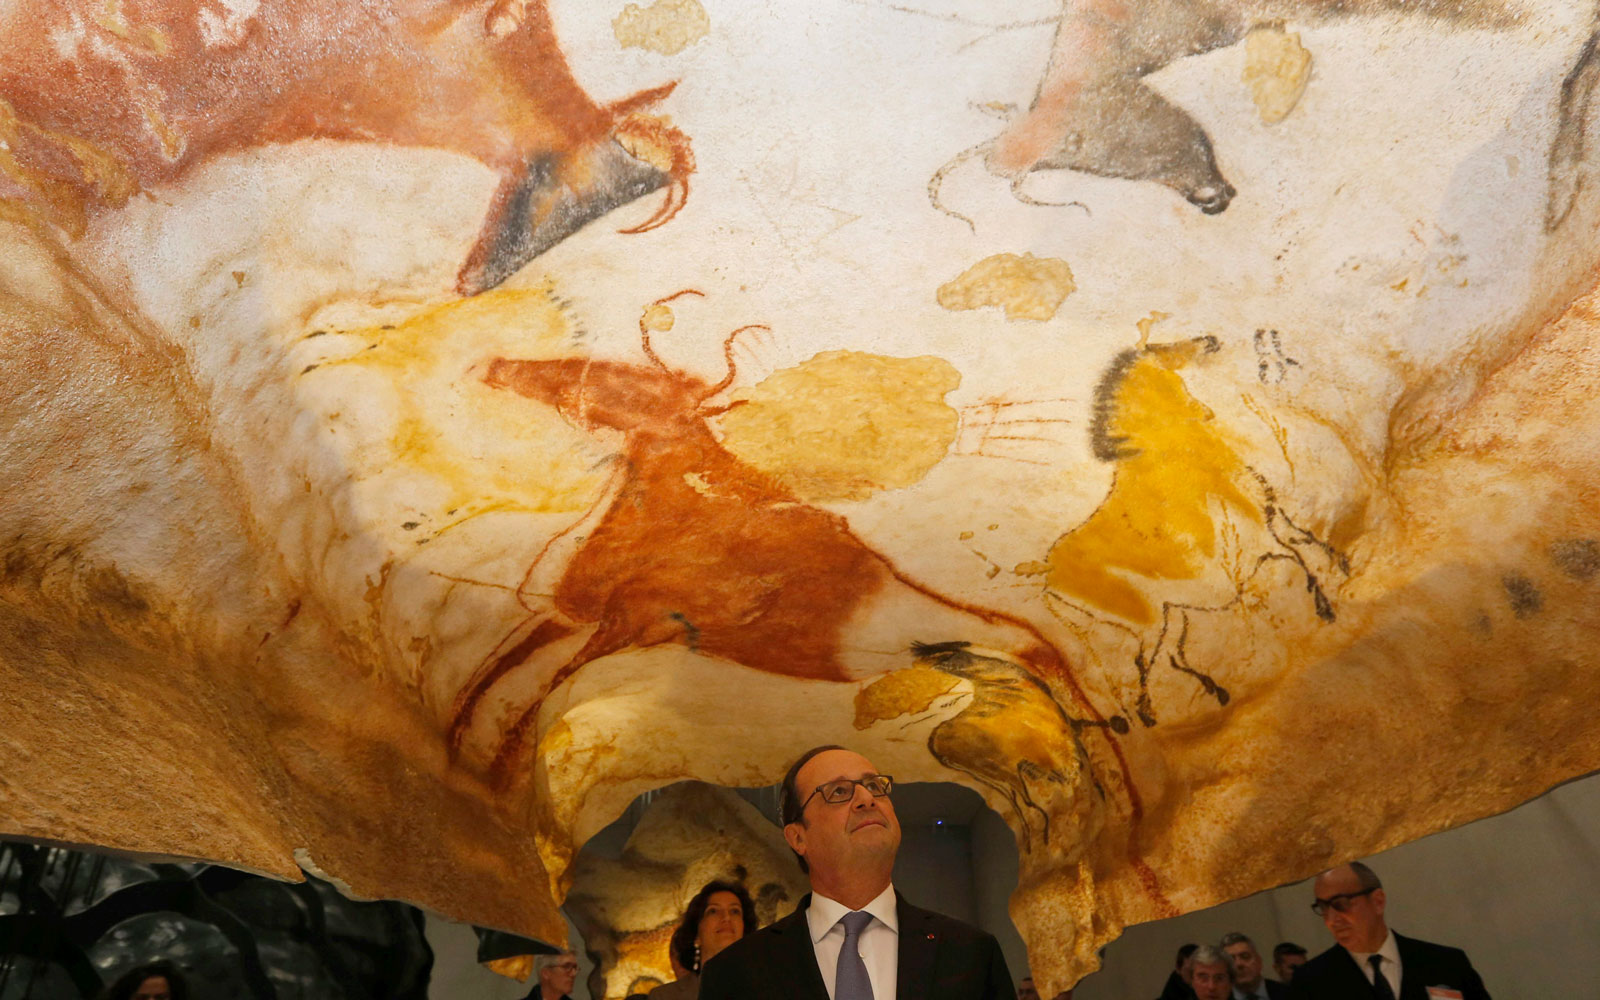 Stone Age 'Sistine Chapel' Comes Alive With New Replica